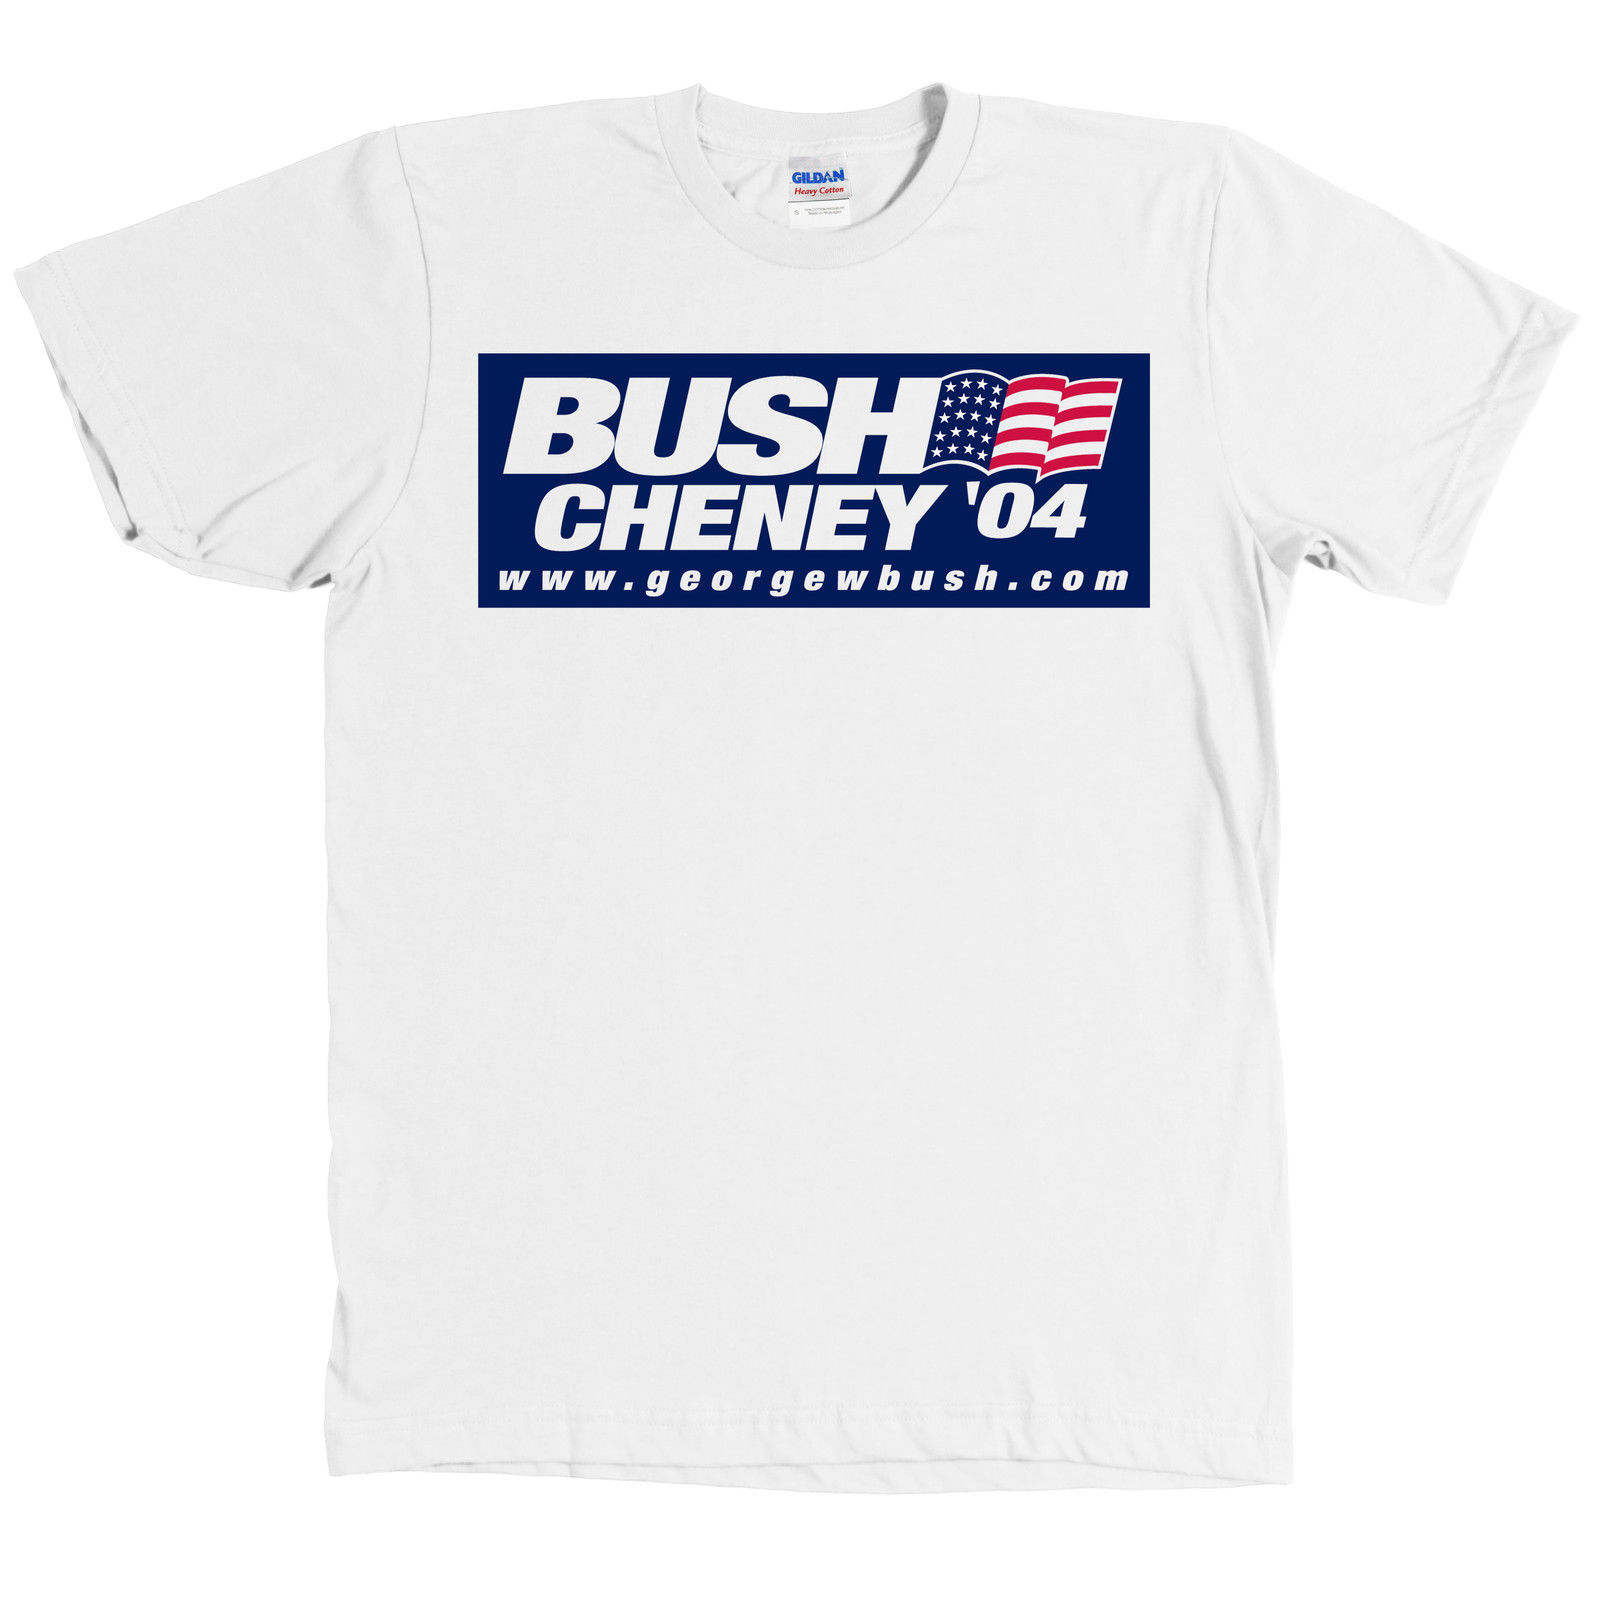 Dick cheney shirts wife story